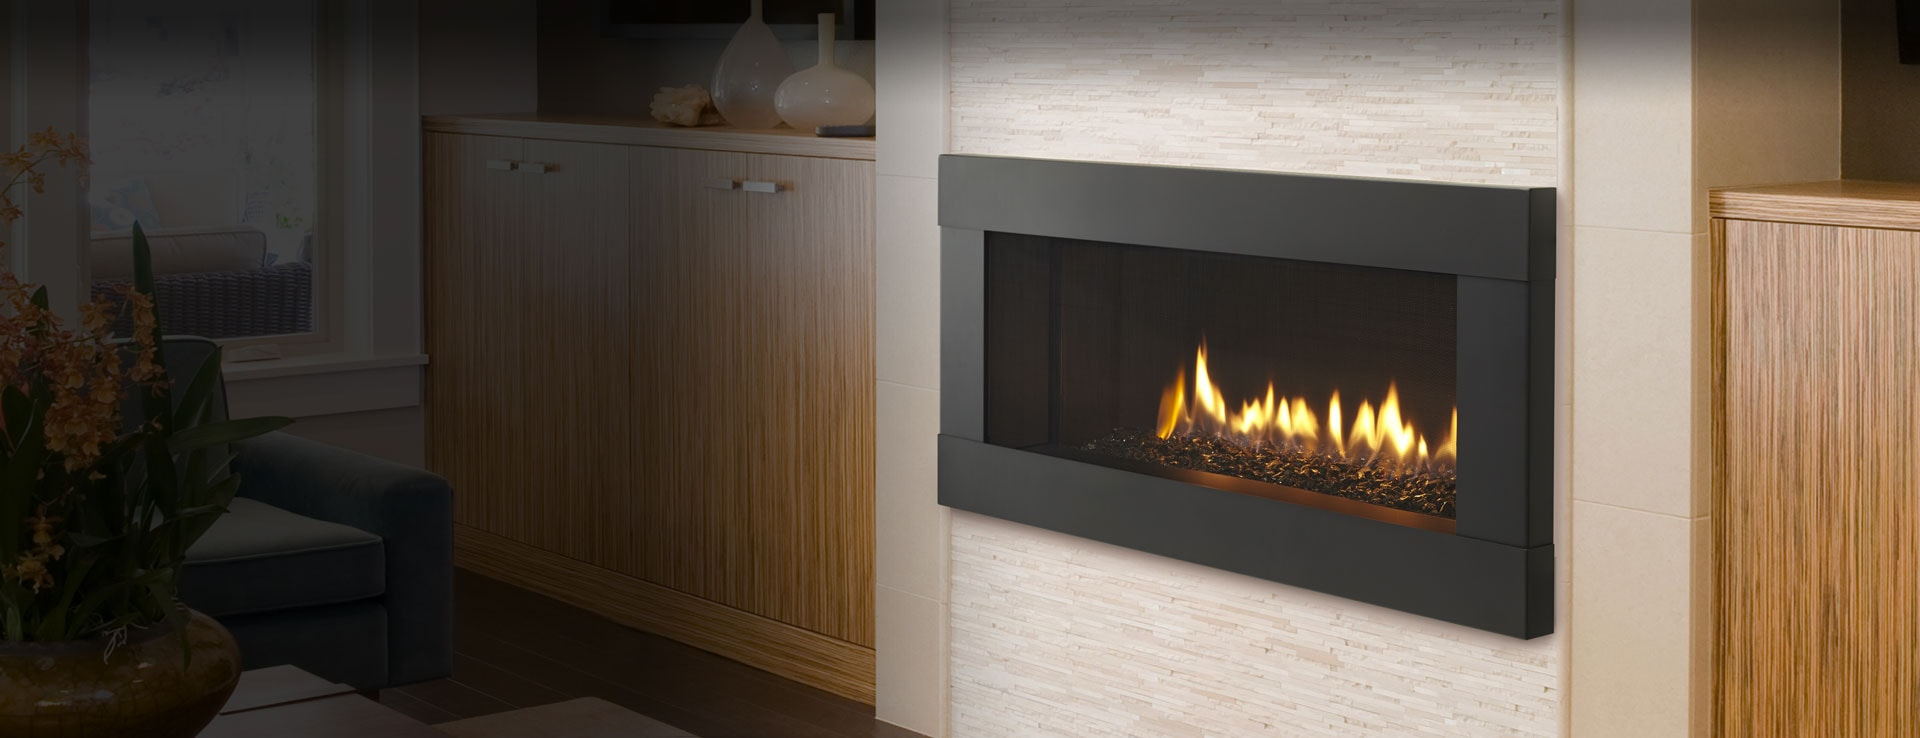 Crave Series Gas Fireplaces Affordable Heatilator